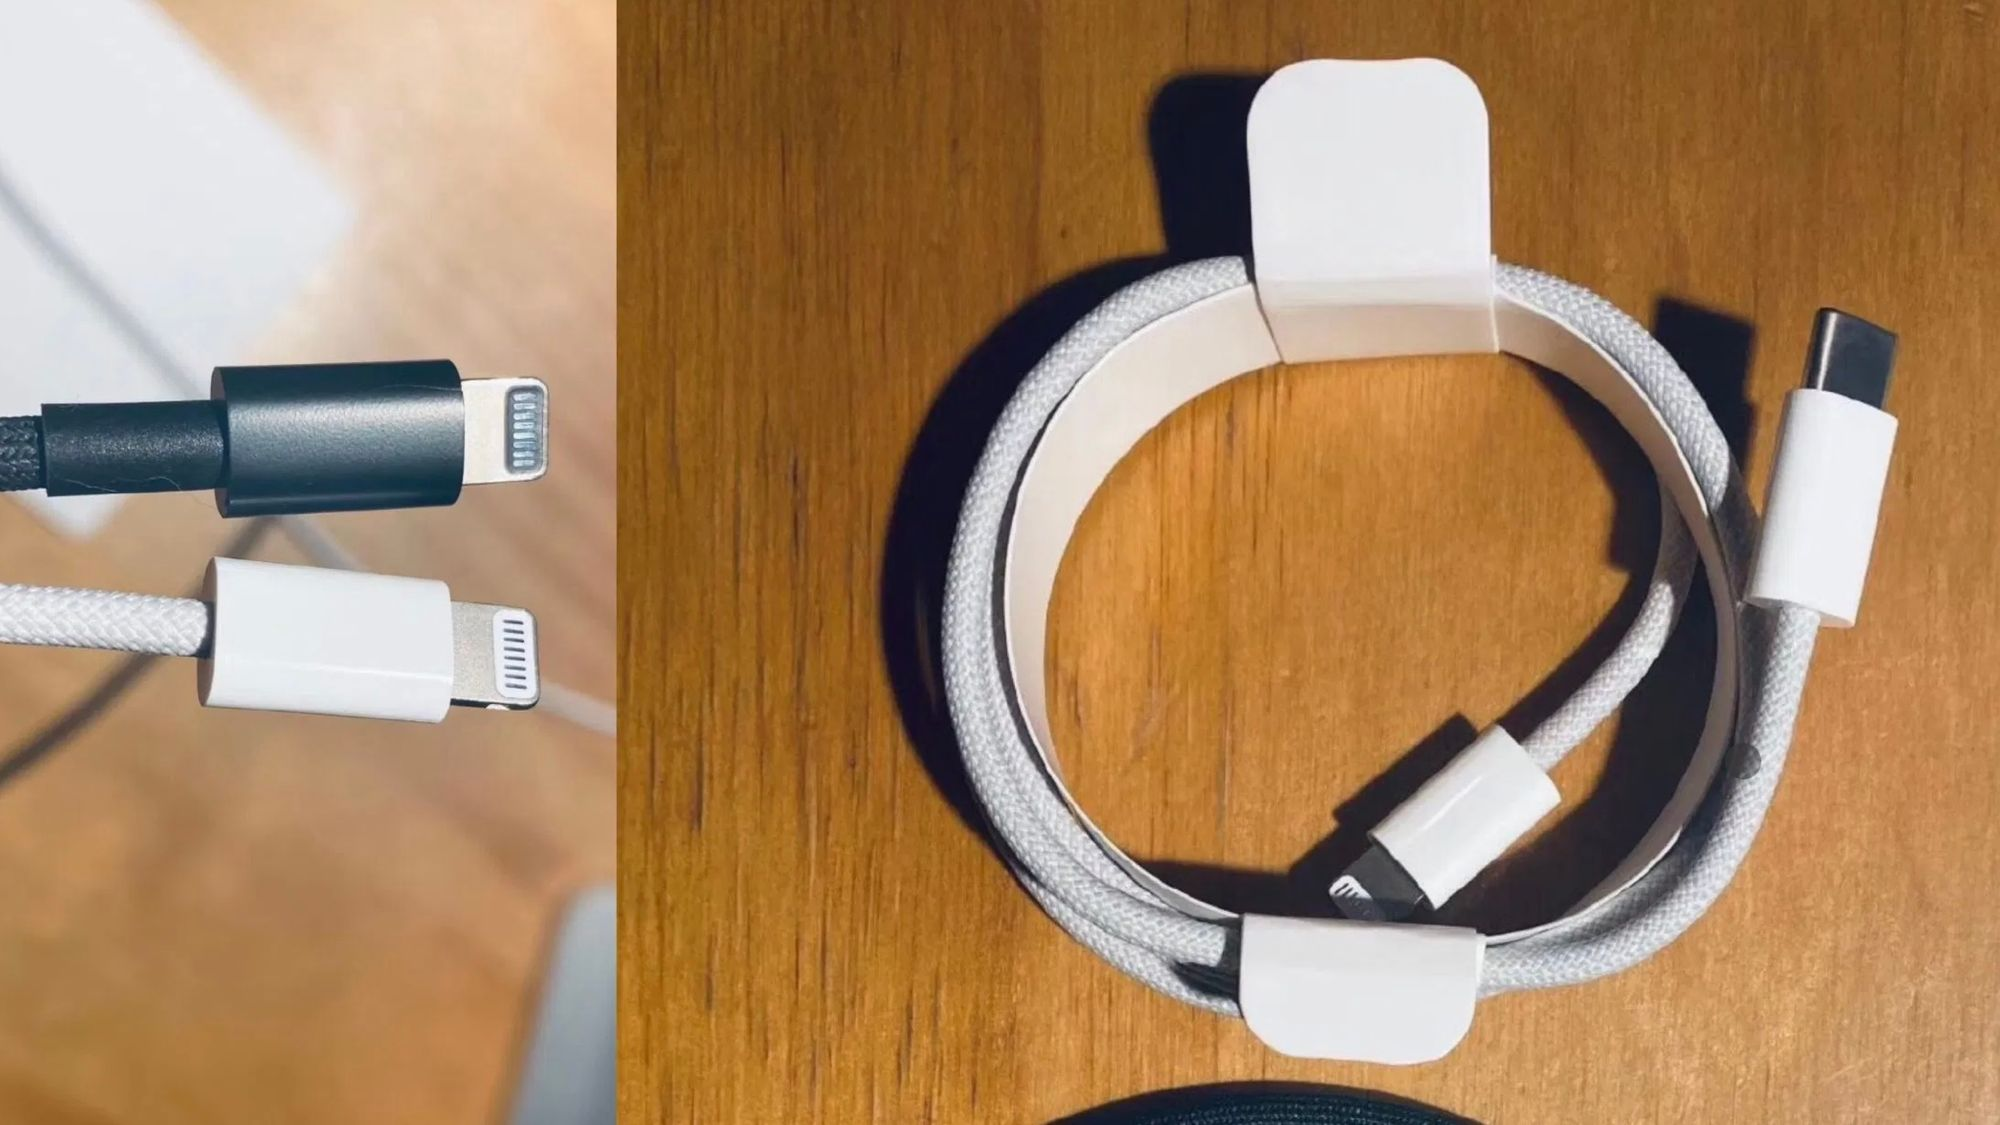 Image of braided USB cable from @L0vetodream on Twitter